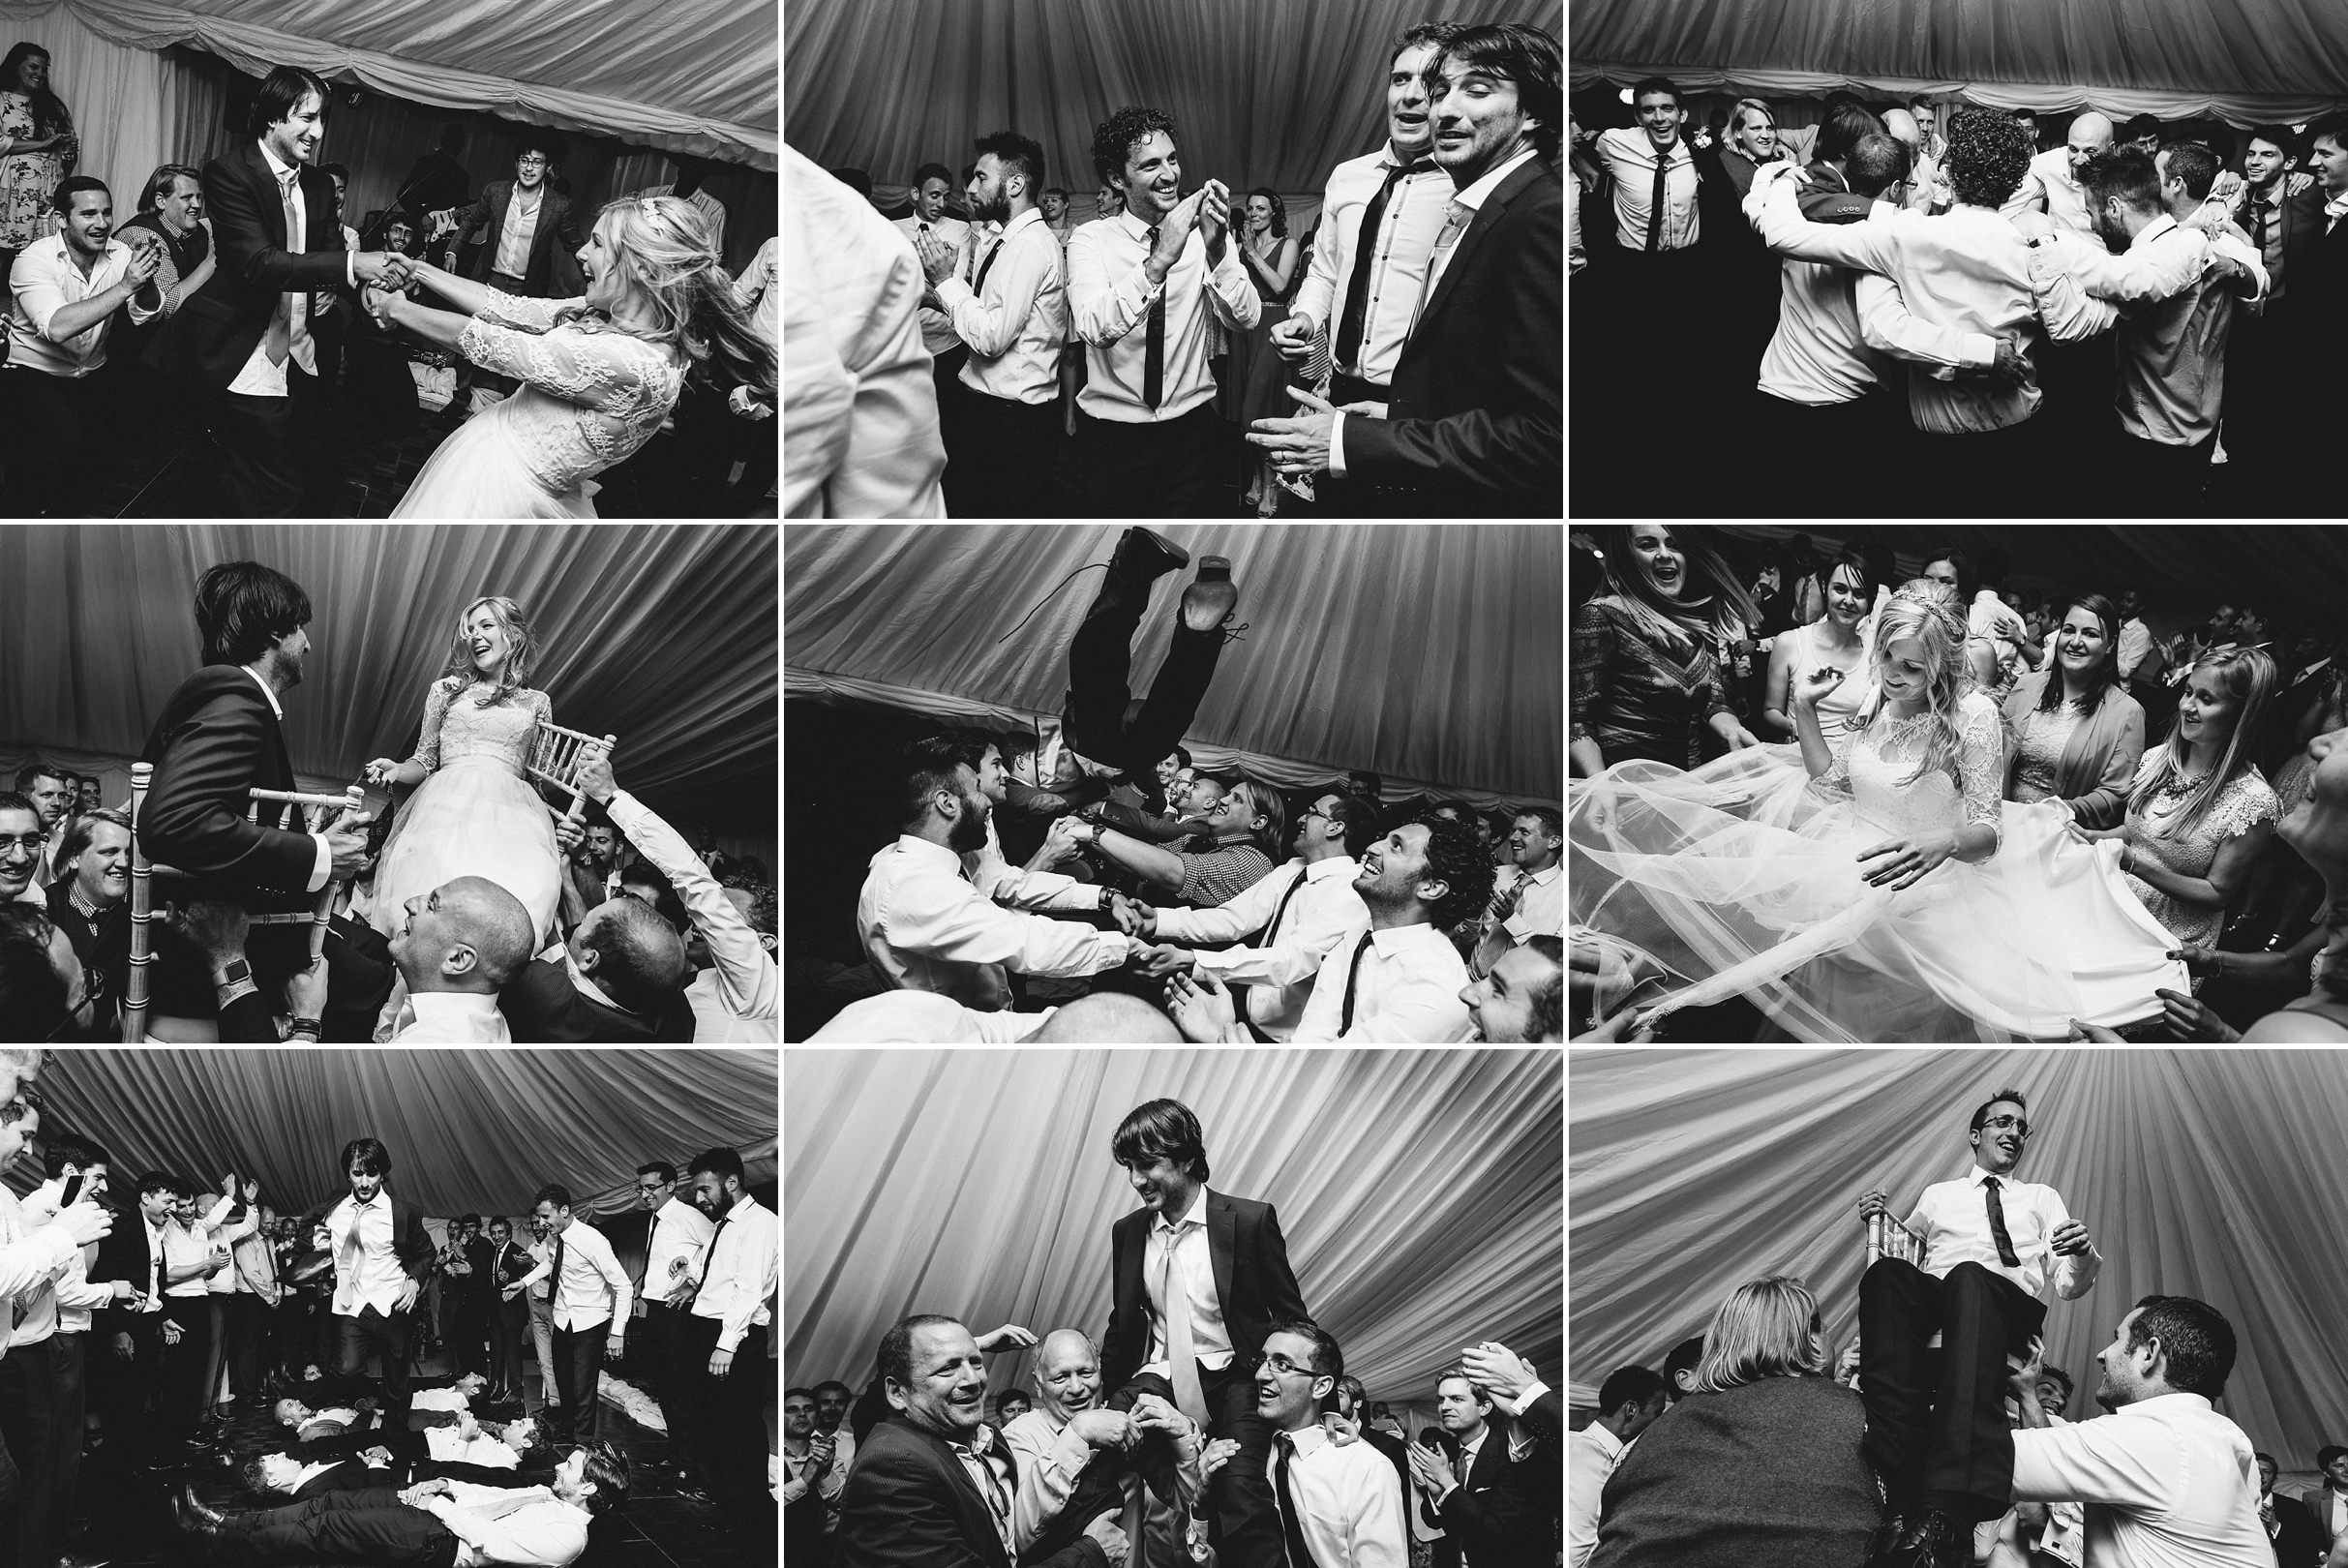 wakehurst place jewish wedding